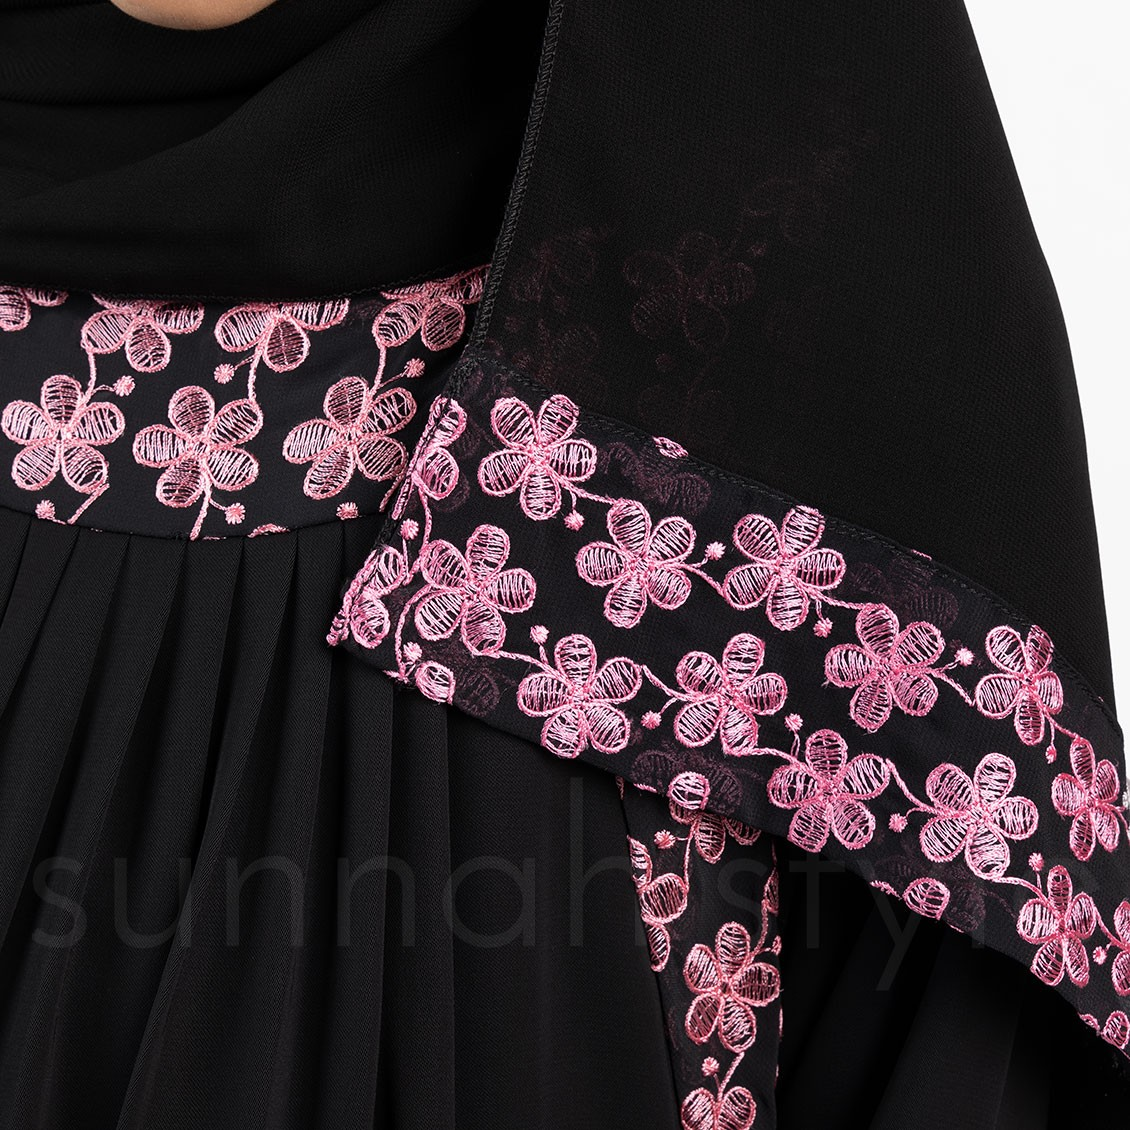 Sunnah Style Girls Daisy Umbrella Embroidered Abaya